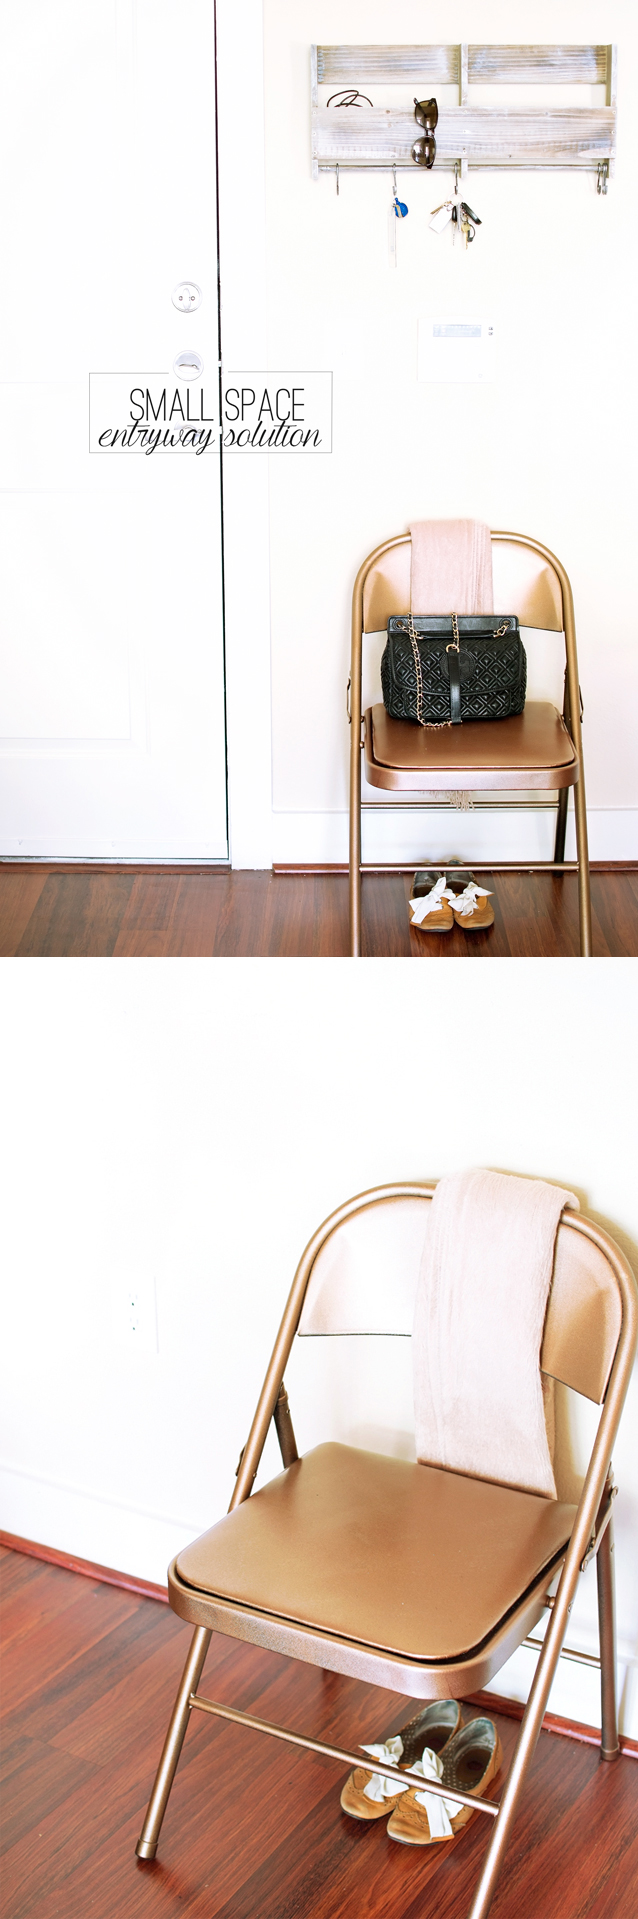 Small-Space-Entryway-Solution-Minimalist